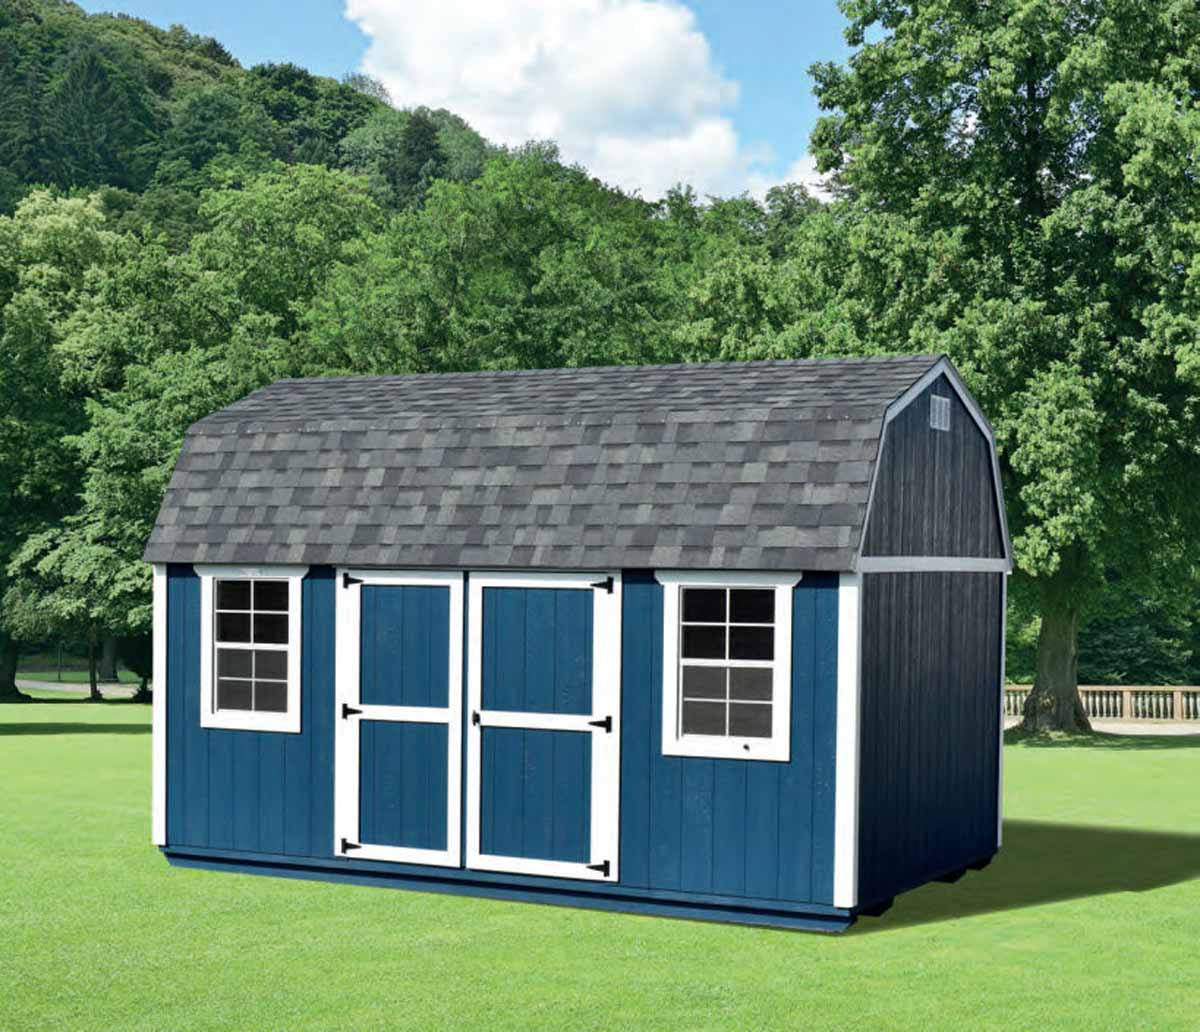 10x16 Lofted Garden Shed with Navy walls & White trim with Estate Gray shingles